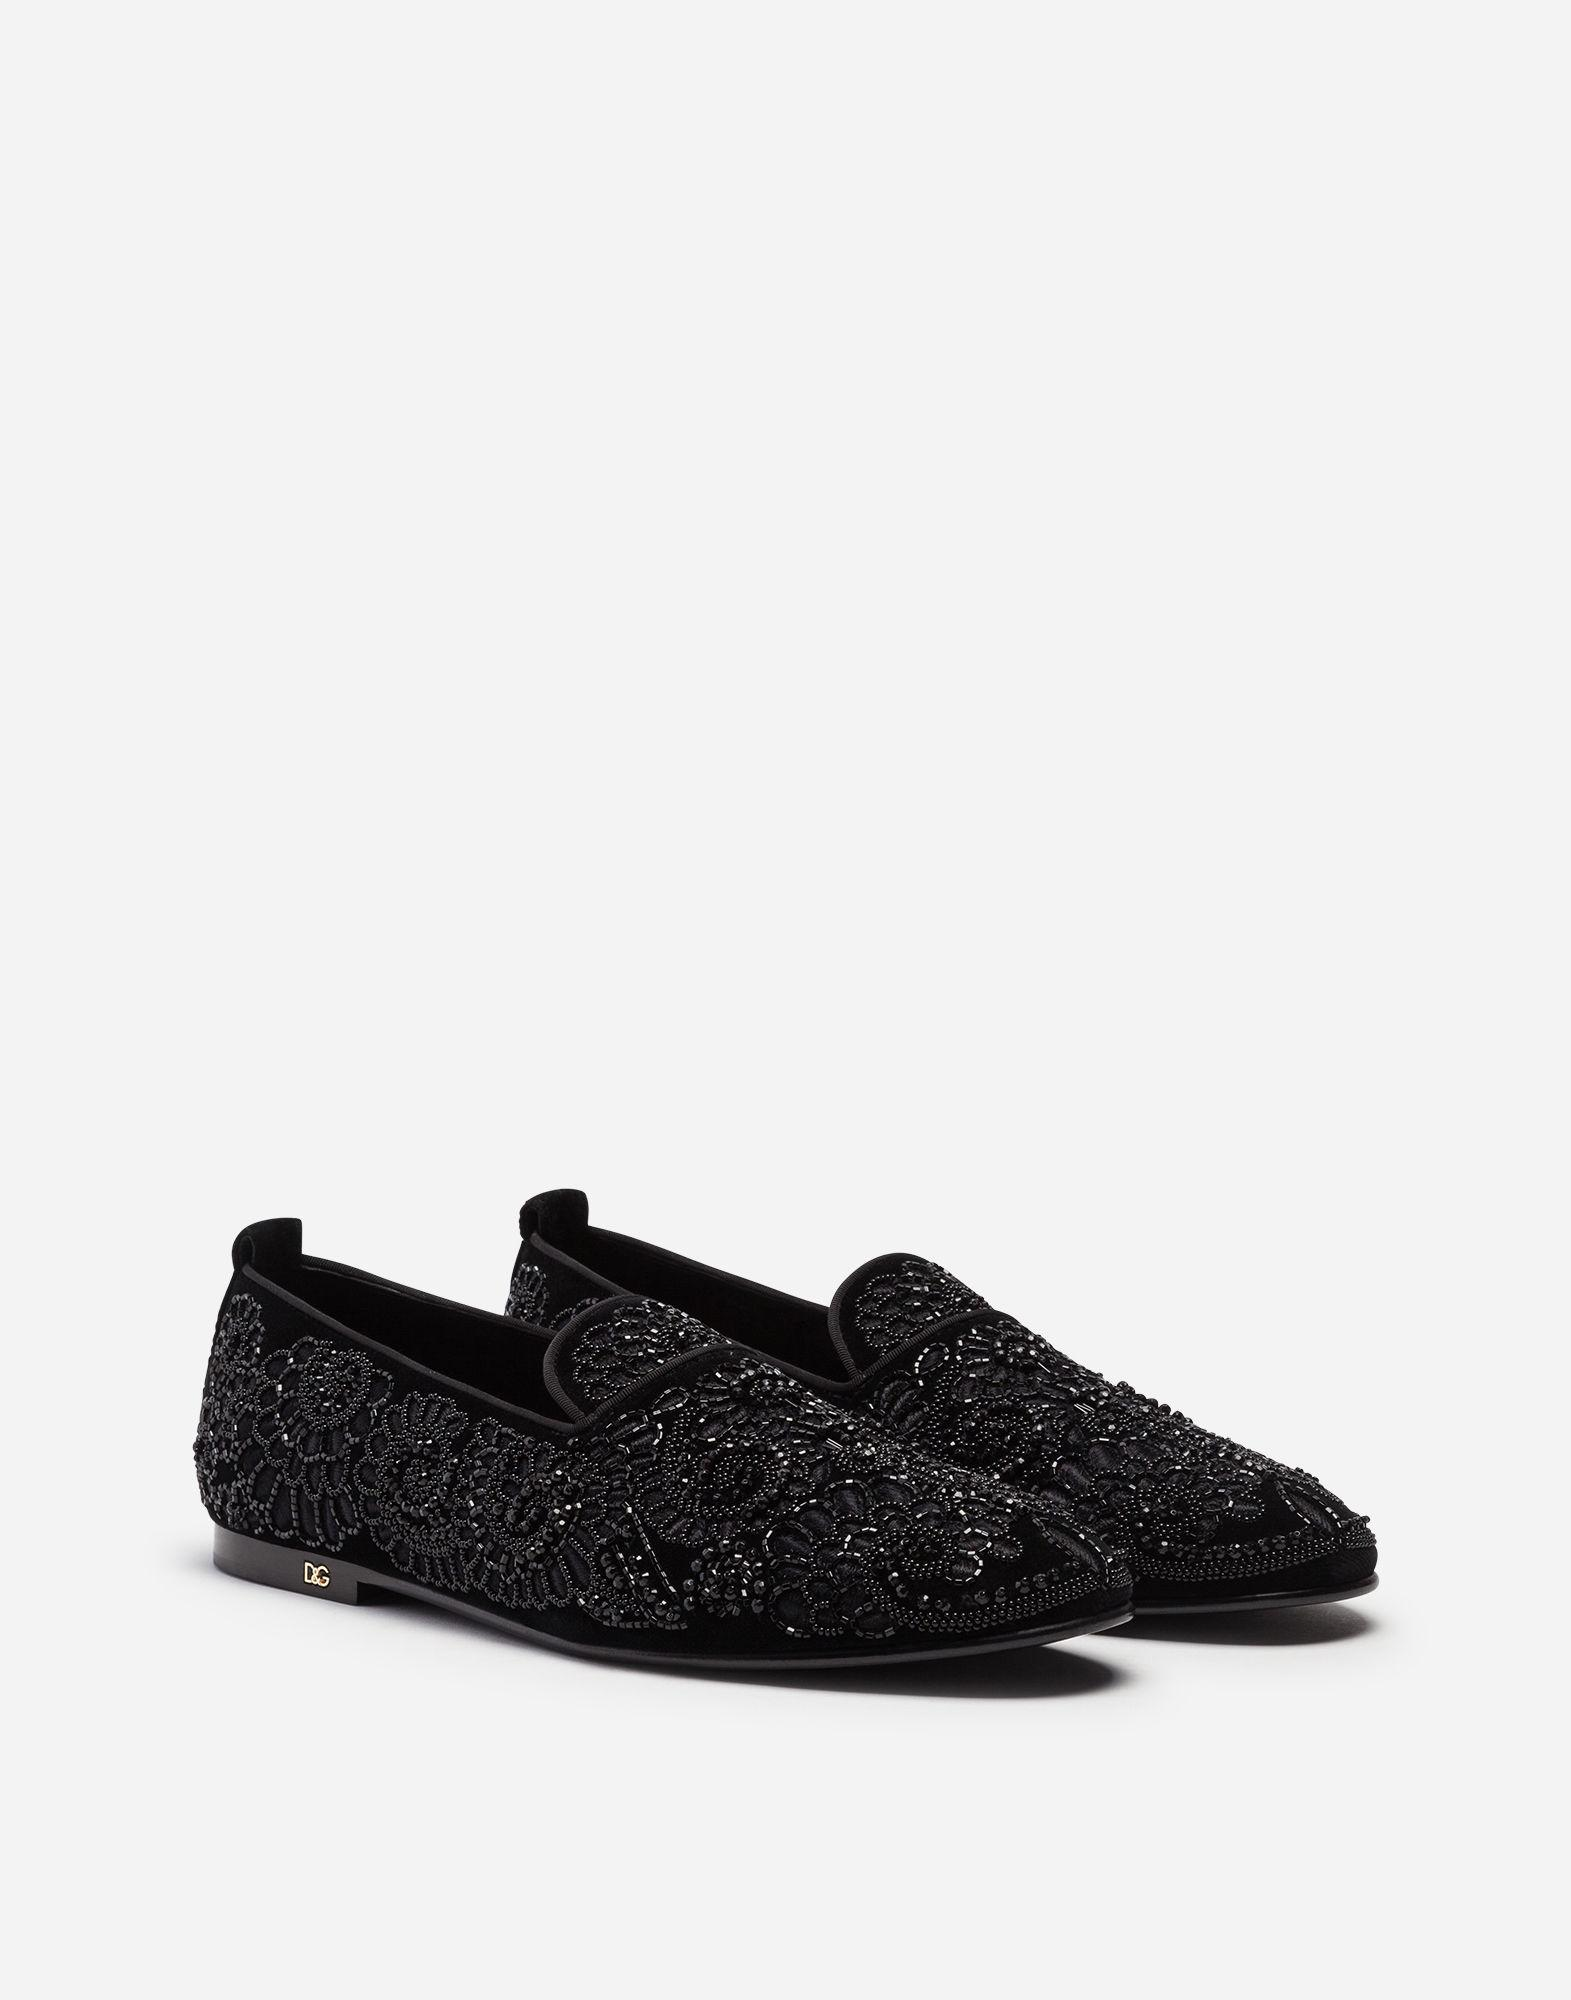 8c72ee7d4f9 Lyst - Dolce   Gabbana Velvet Loafers With Embroidery in Black